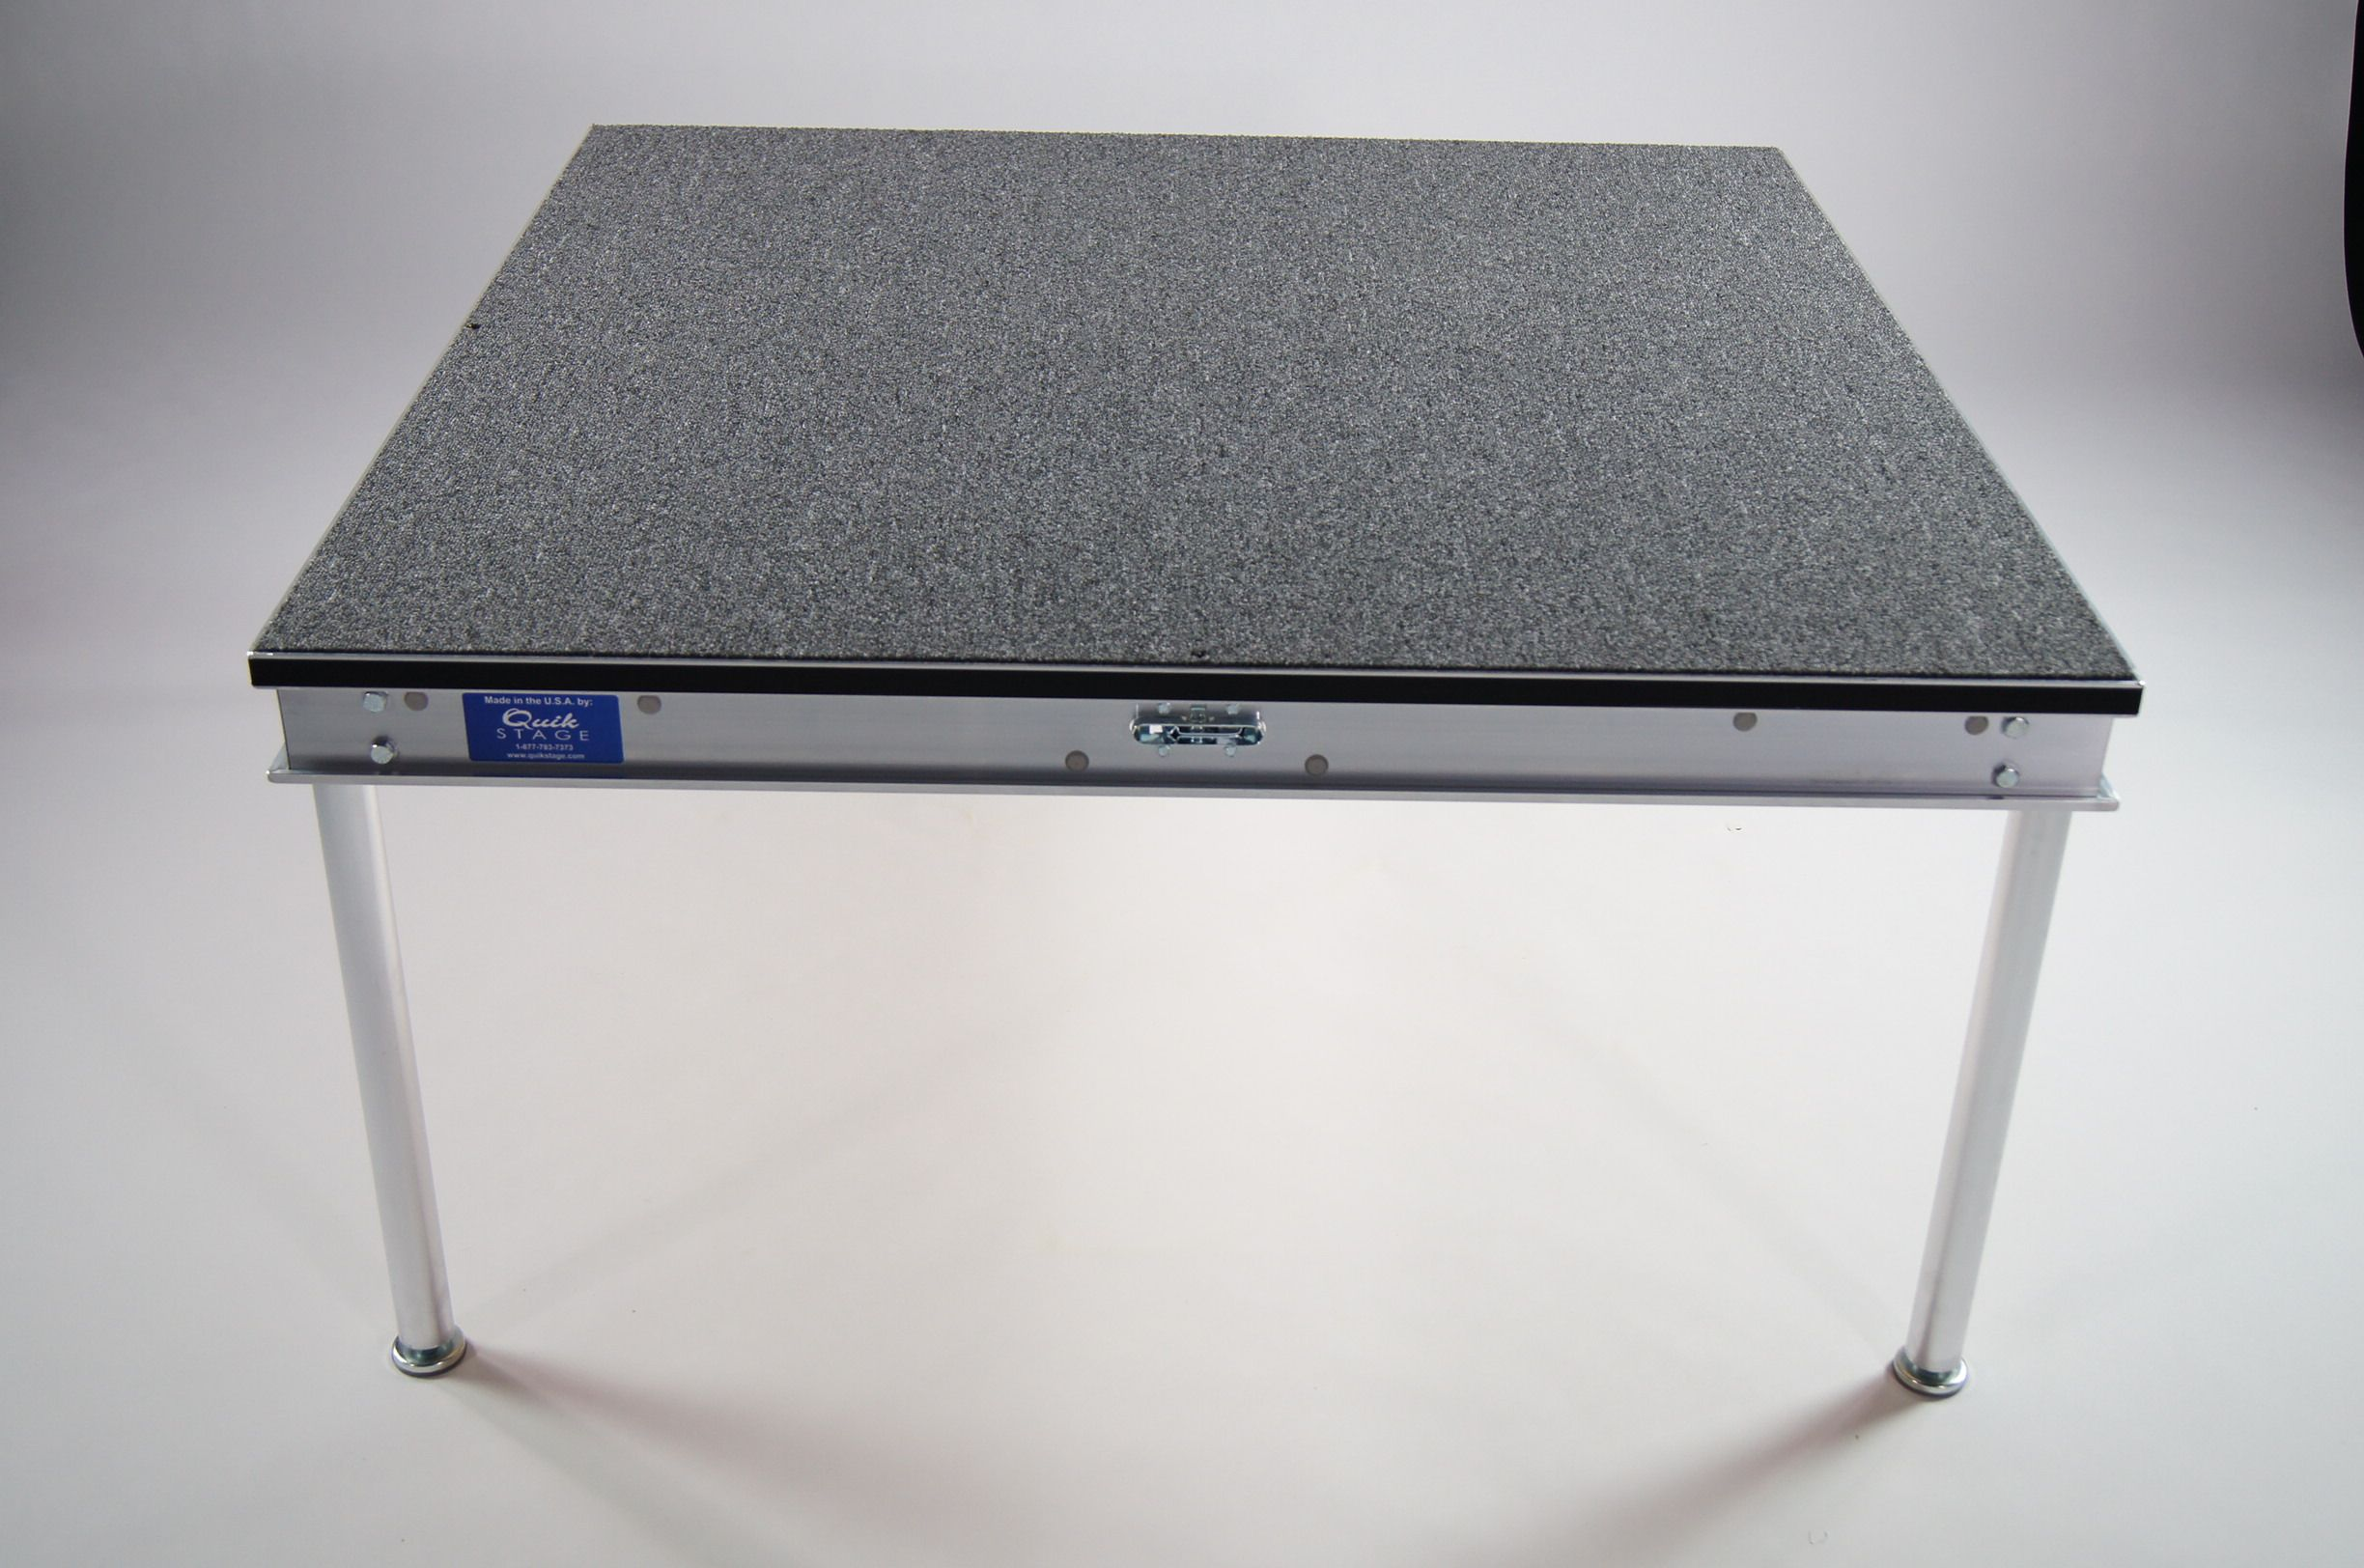 Carpet Option Portable Stage Deck With The Carpeted Surface From Quik Stage Portablestage Stage Staging Events Band Church Portable Stage Staging Home